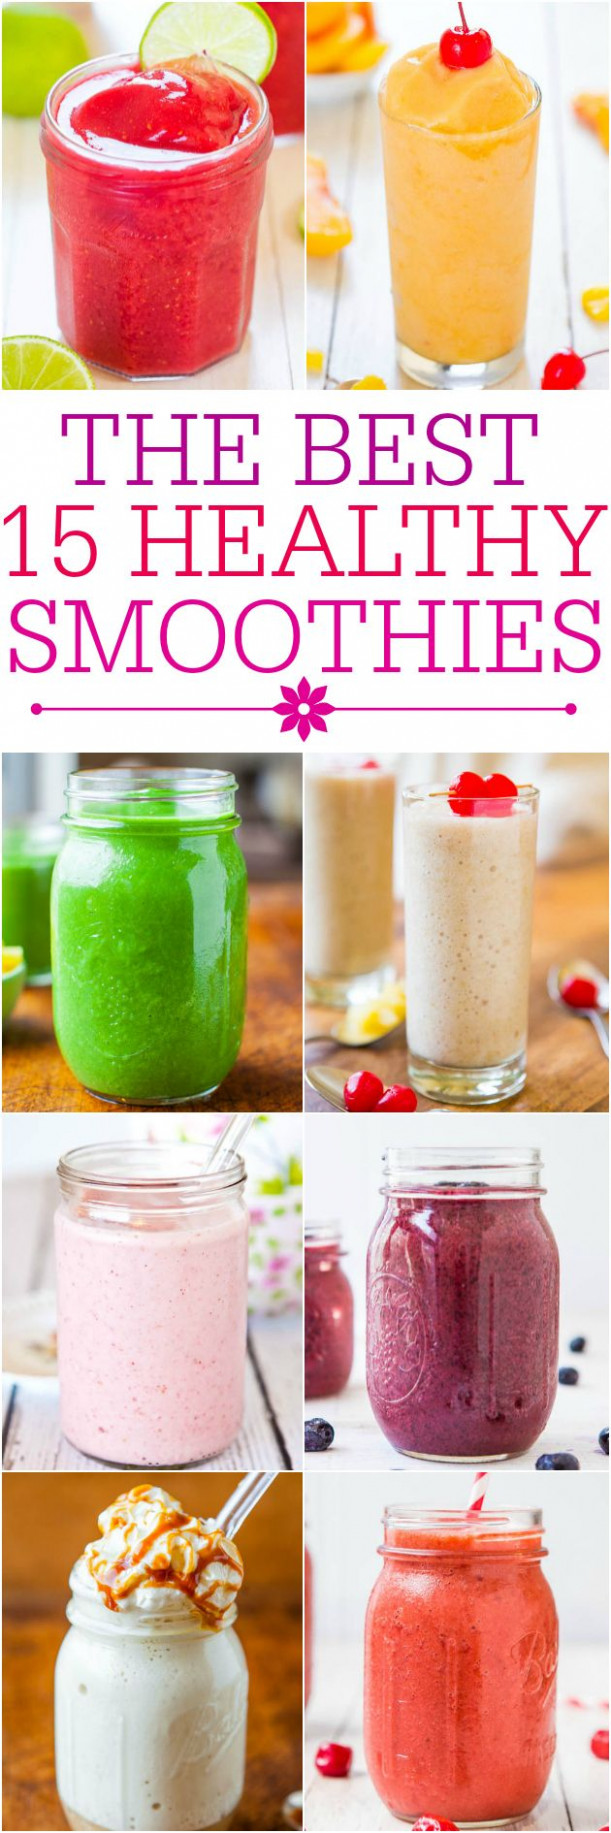 Recipe For Smoothies ♥ Healthy Smoothie Drinks - Recipes Healthy Smoothies